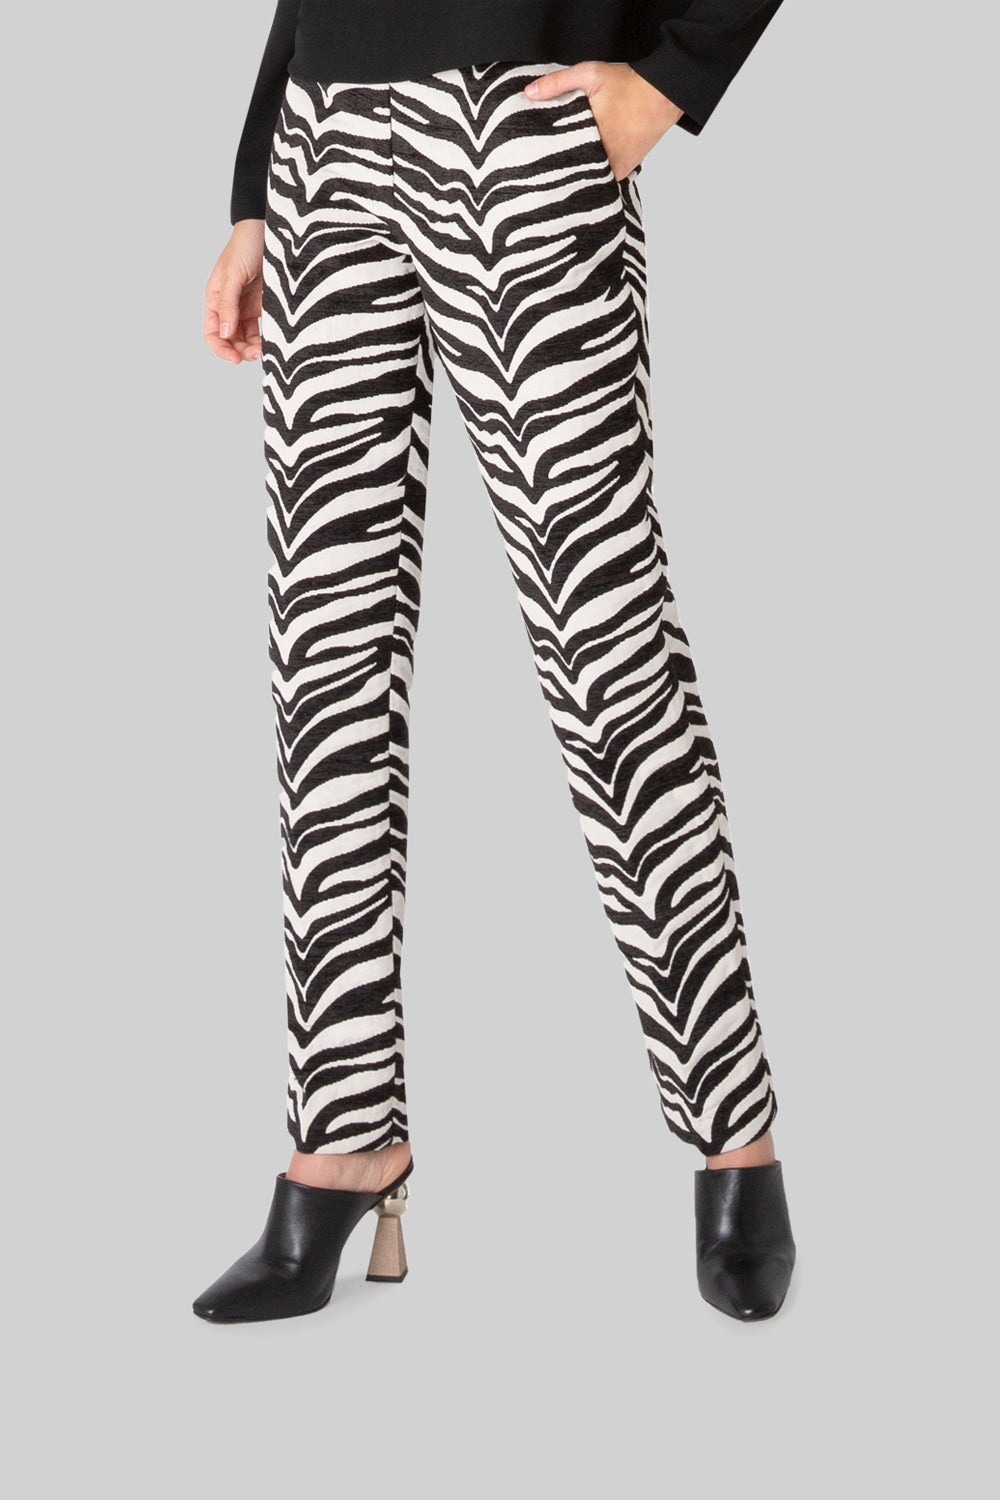 WILD ABOUT THE PRINT PENCIL PANT